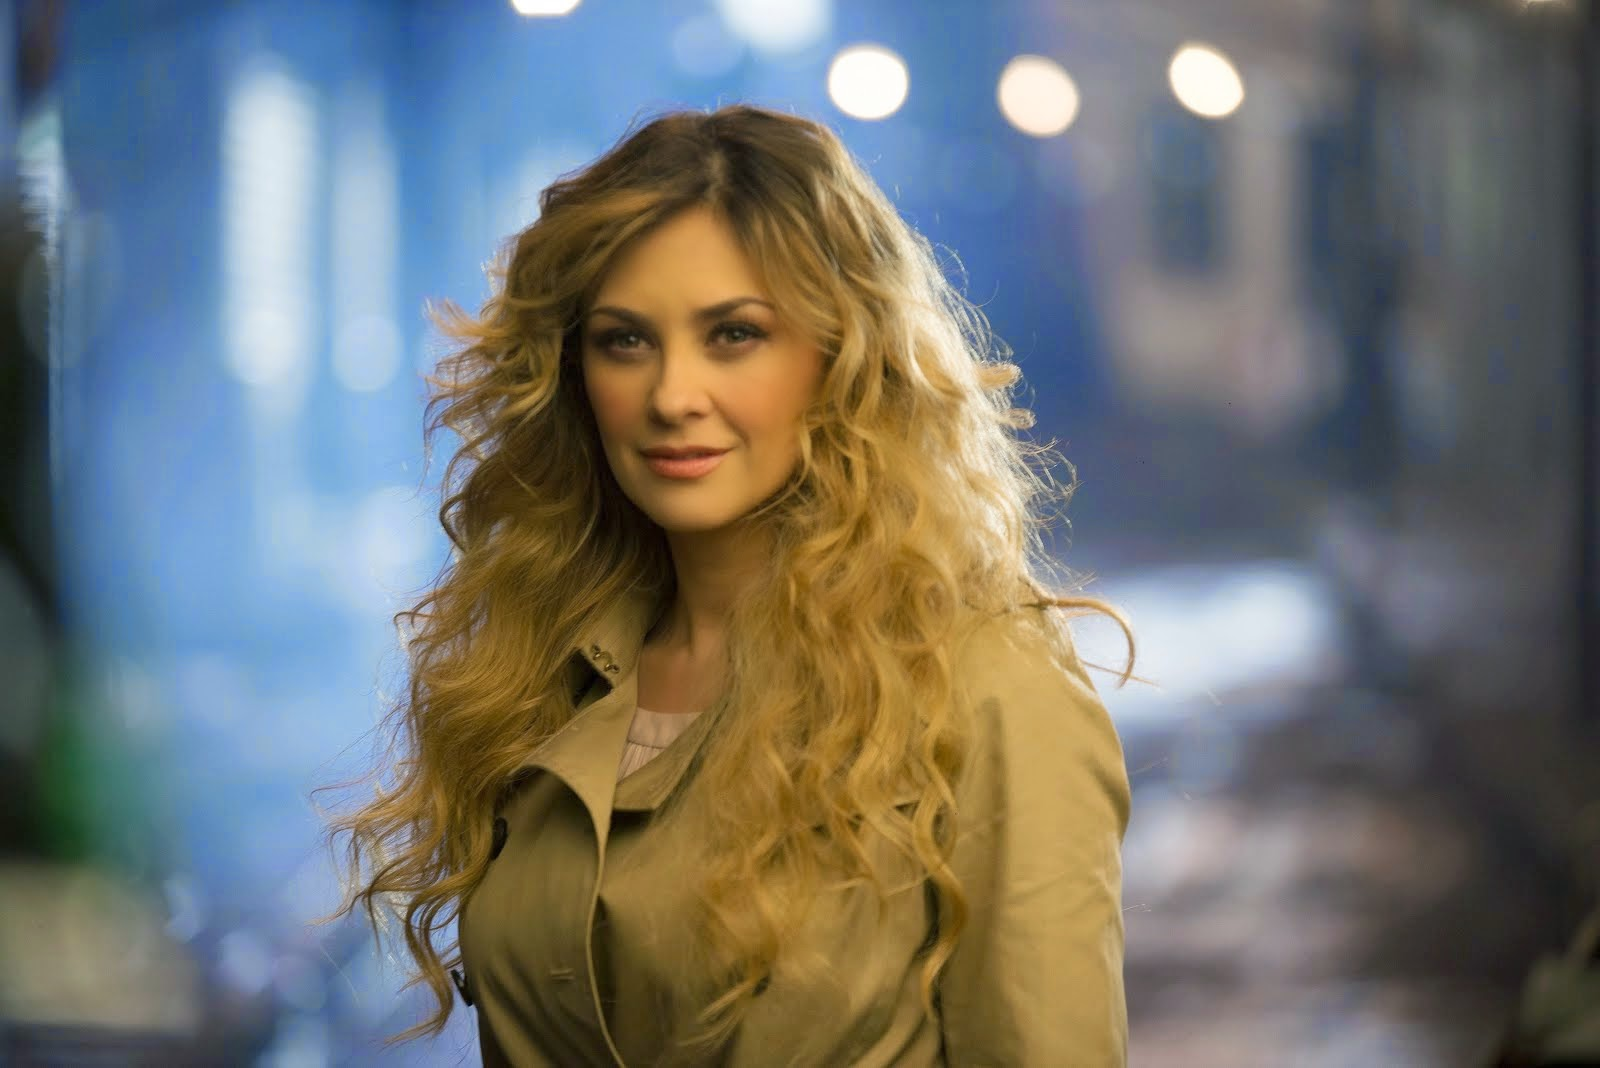 los miserables de aracely arambula